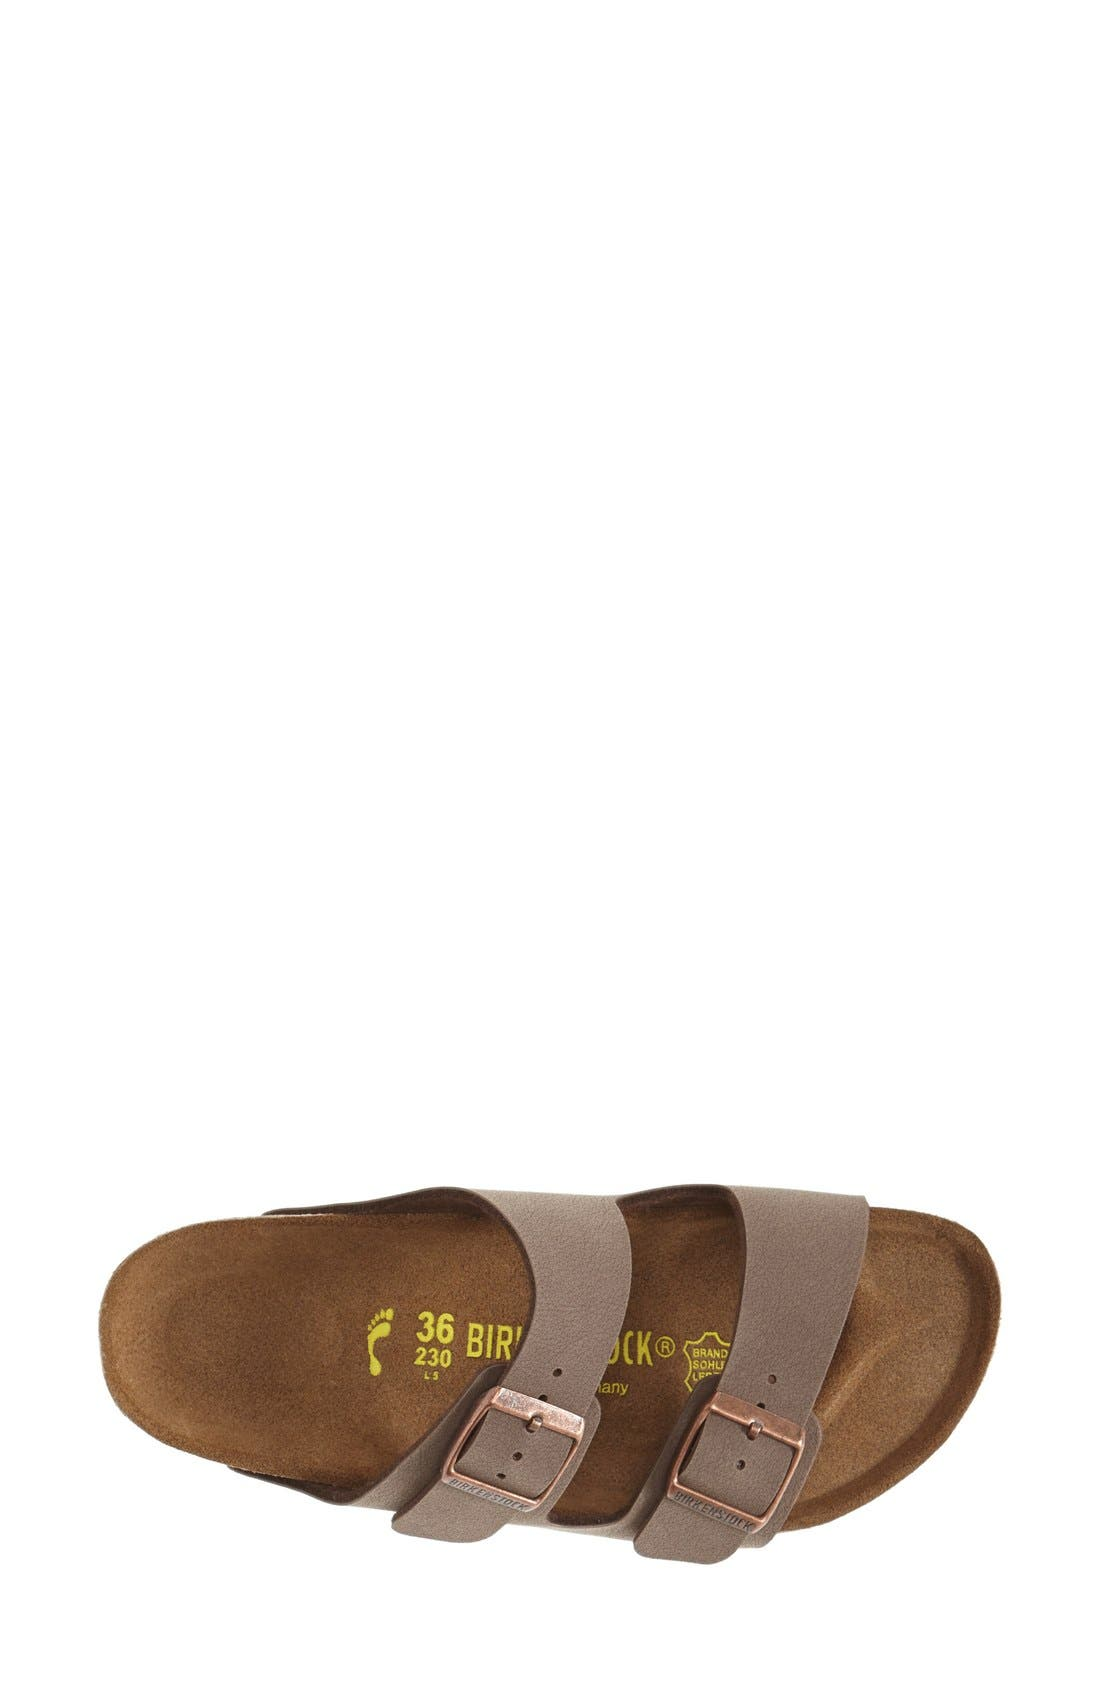 Arizona Birko-Flor Sandal,                             Alternate thumbnail 3, color,                             Mocha